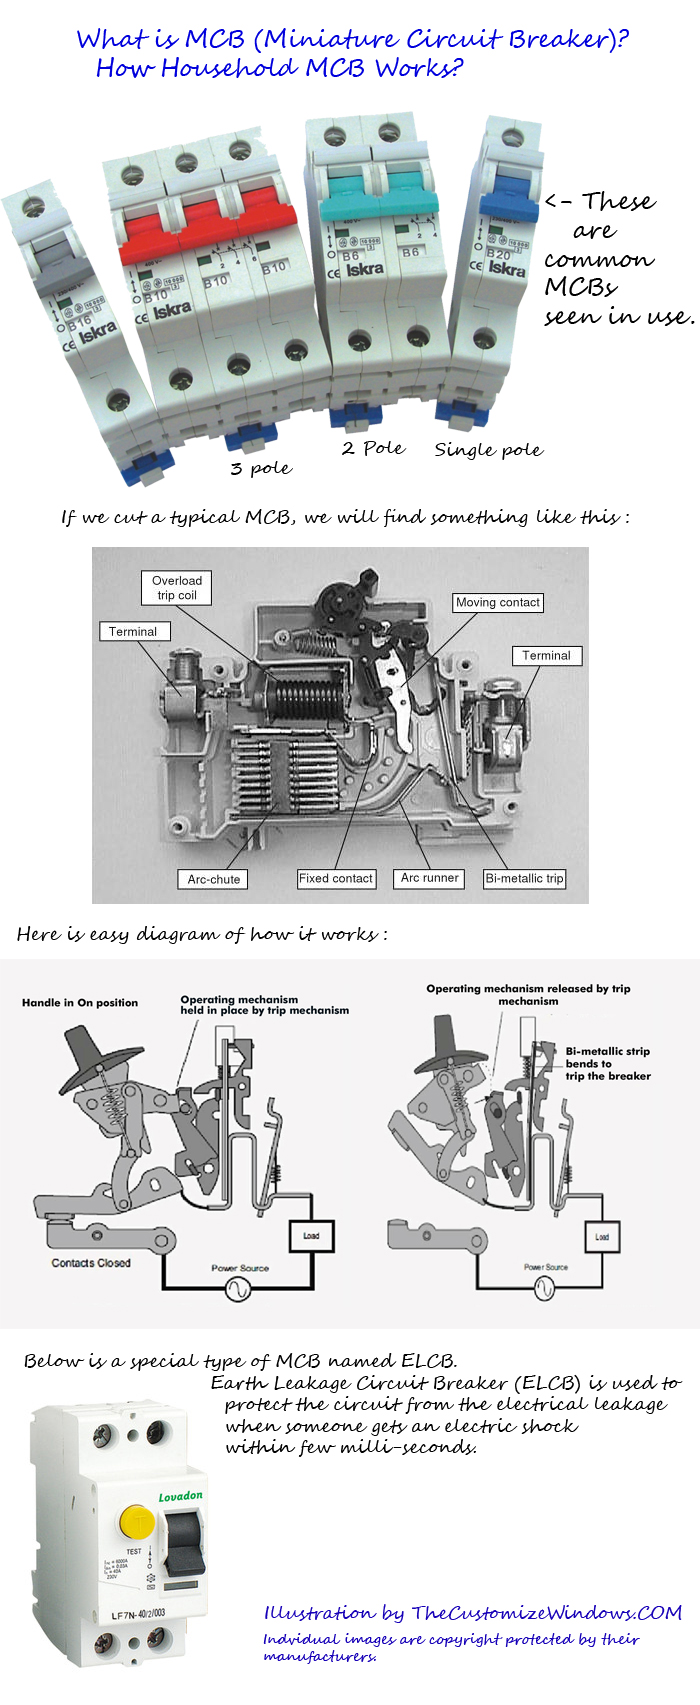 What-is-MCB-Miniature-Circuit-Breaker-How-Household-MCB-Works